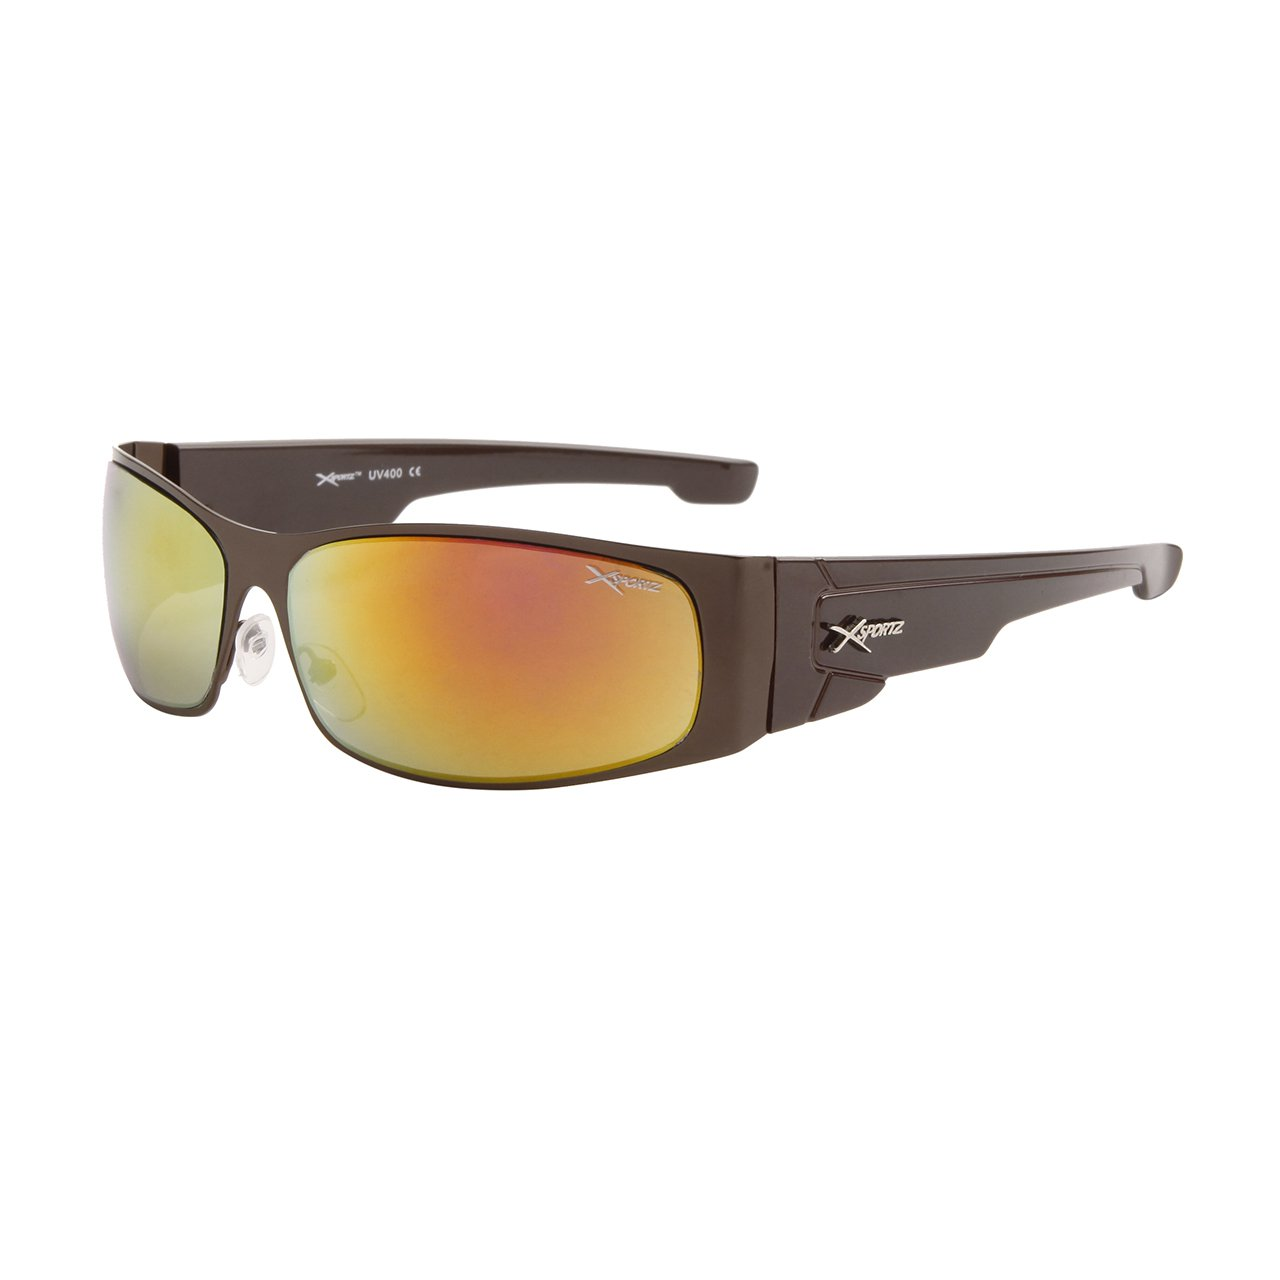 MEN'S DESIGNER INSPIRED BLACK FRAME SPORTY XSPORT SUNGLASSES